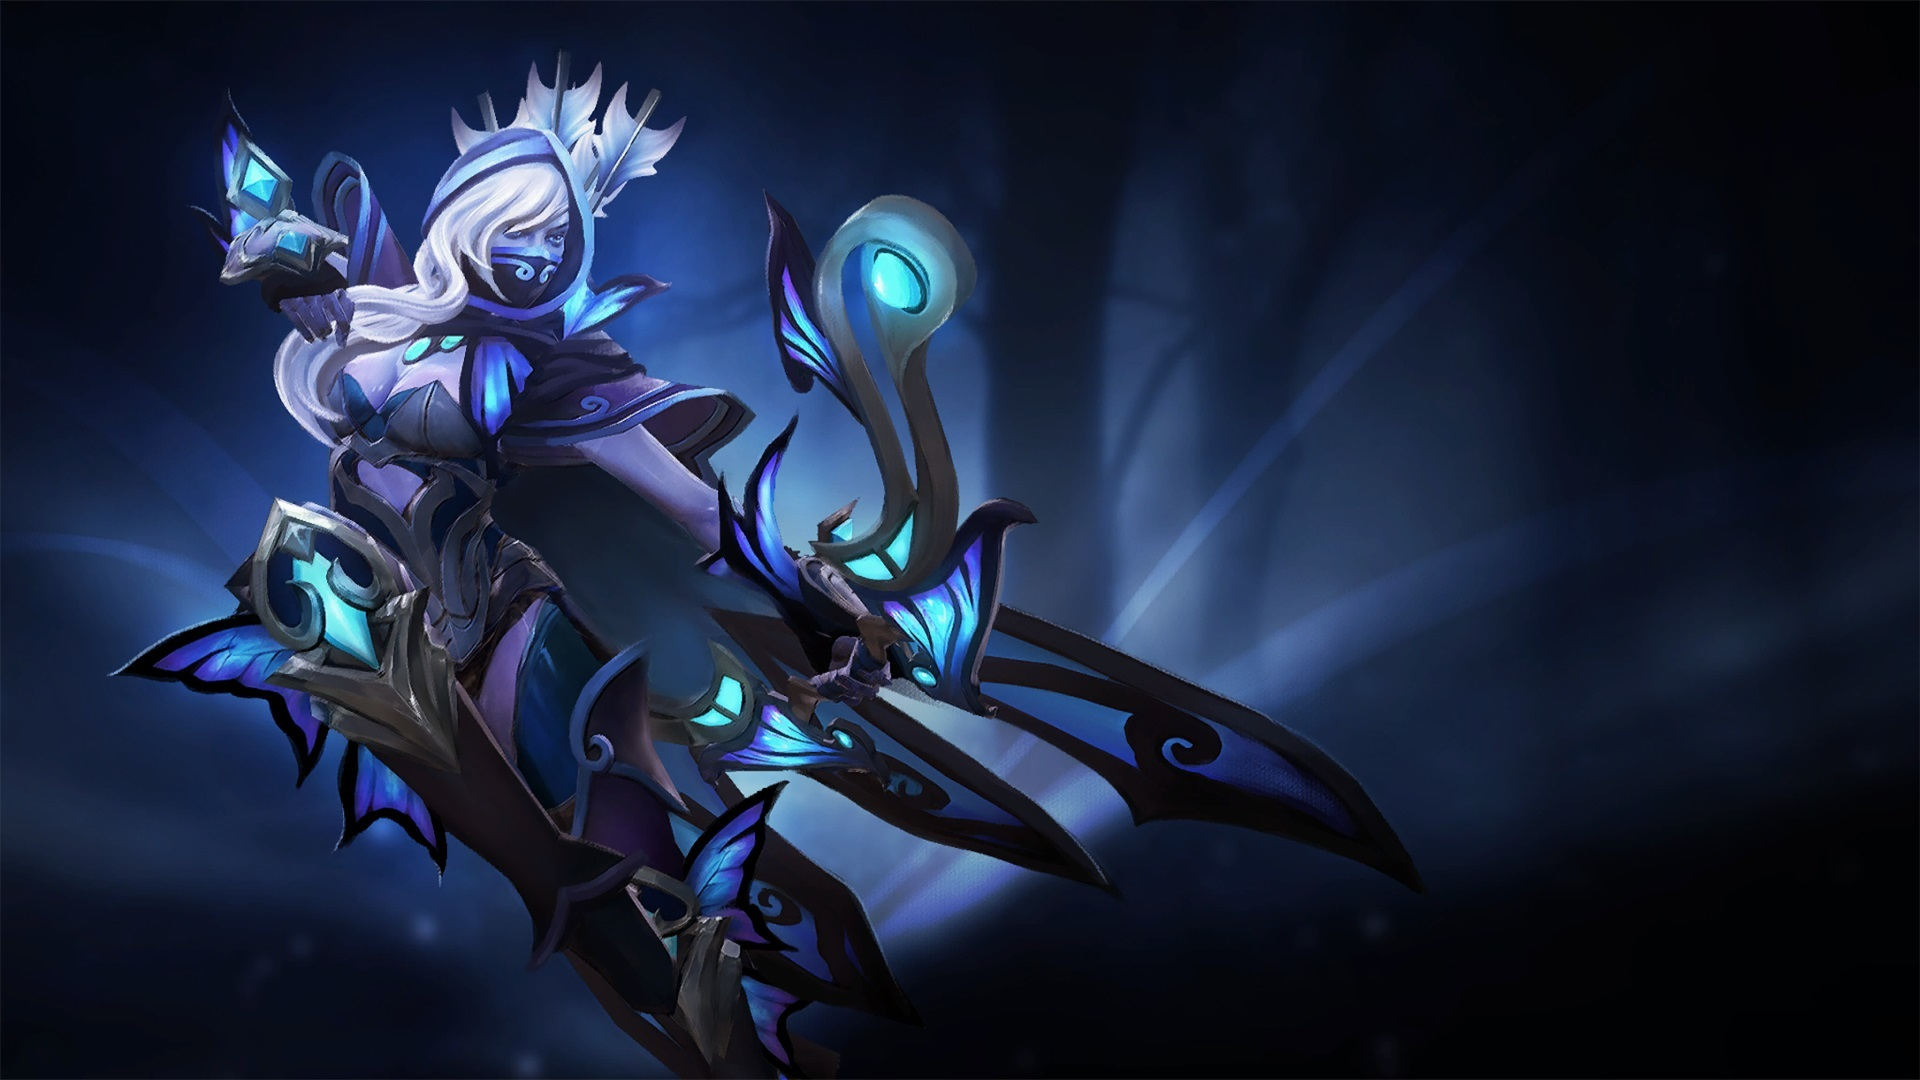 Drow Ranger Guise of the Winged Bolt wallpaper downloads